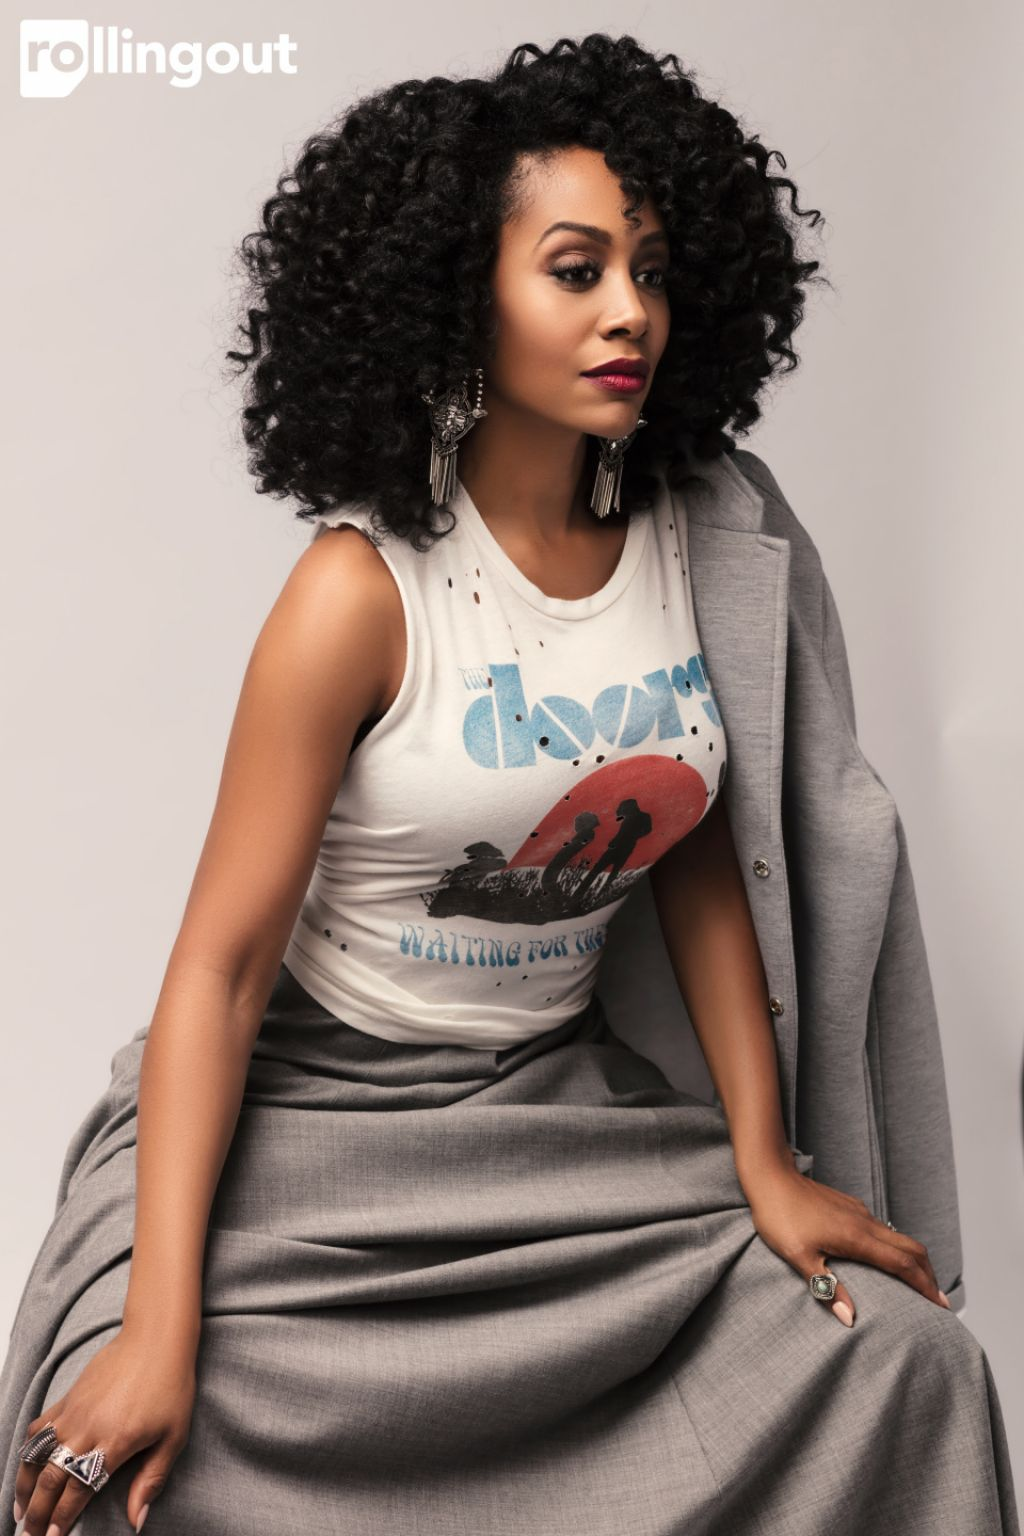 simone-missick-rolling-out-magazine-february-2017-photos-1